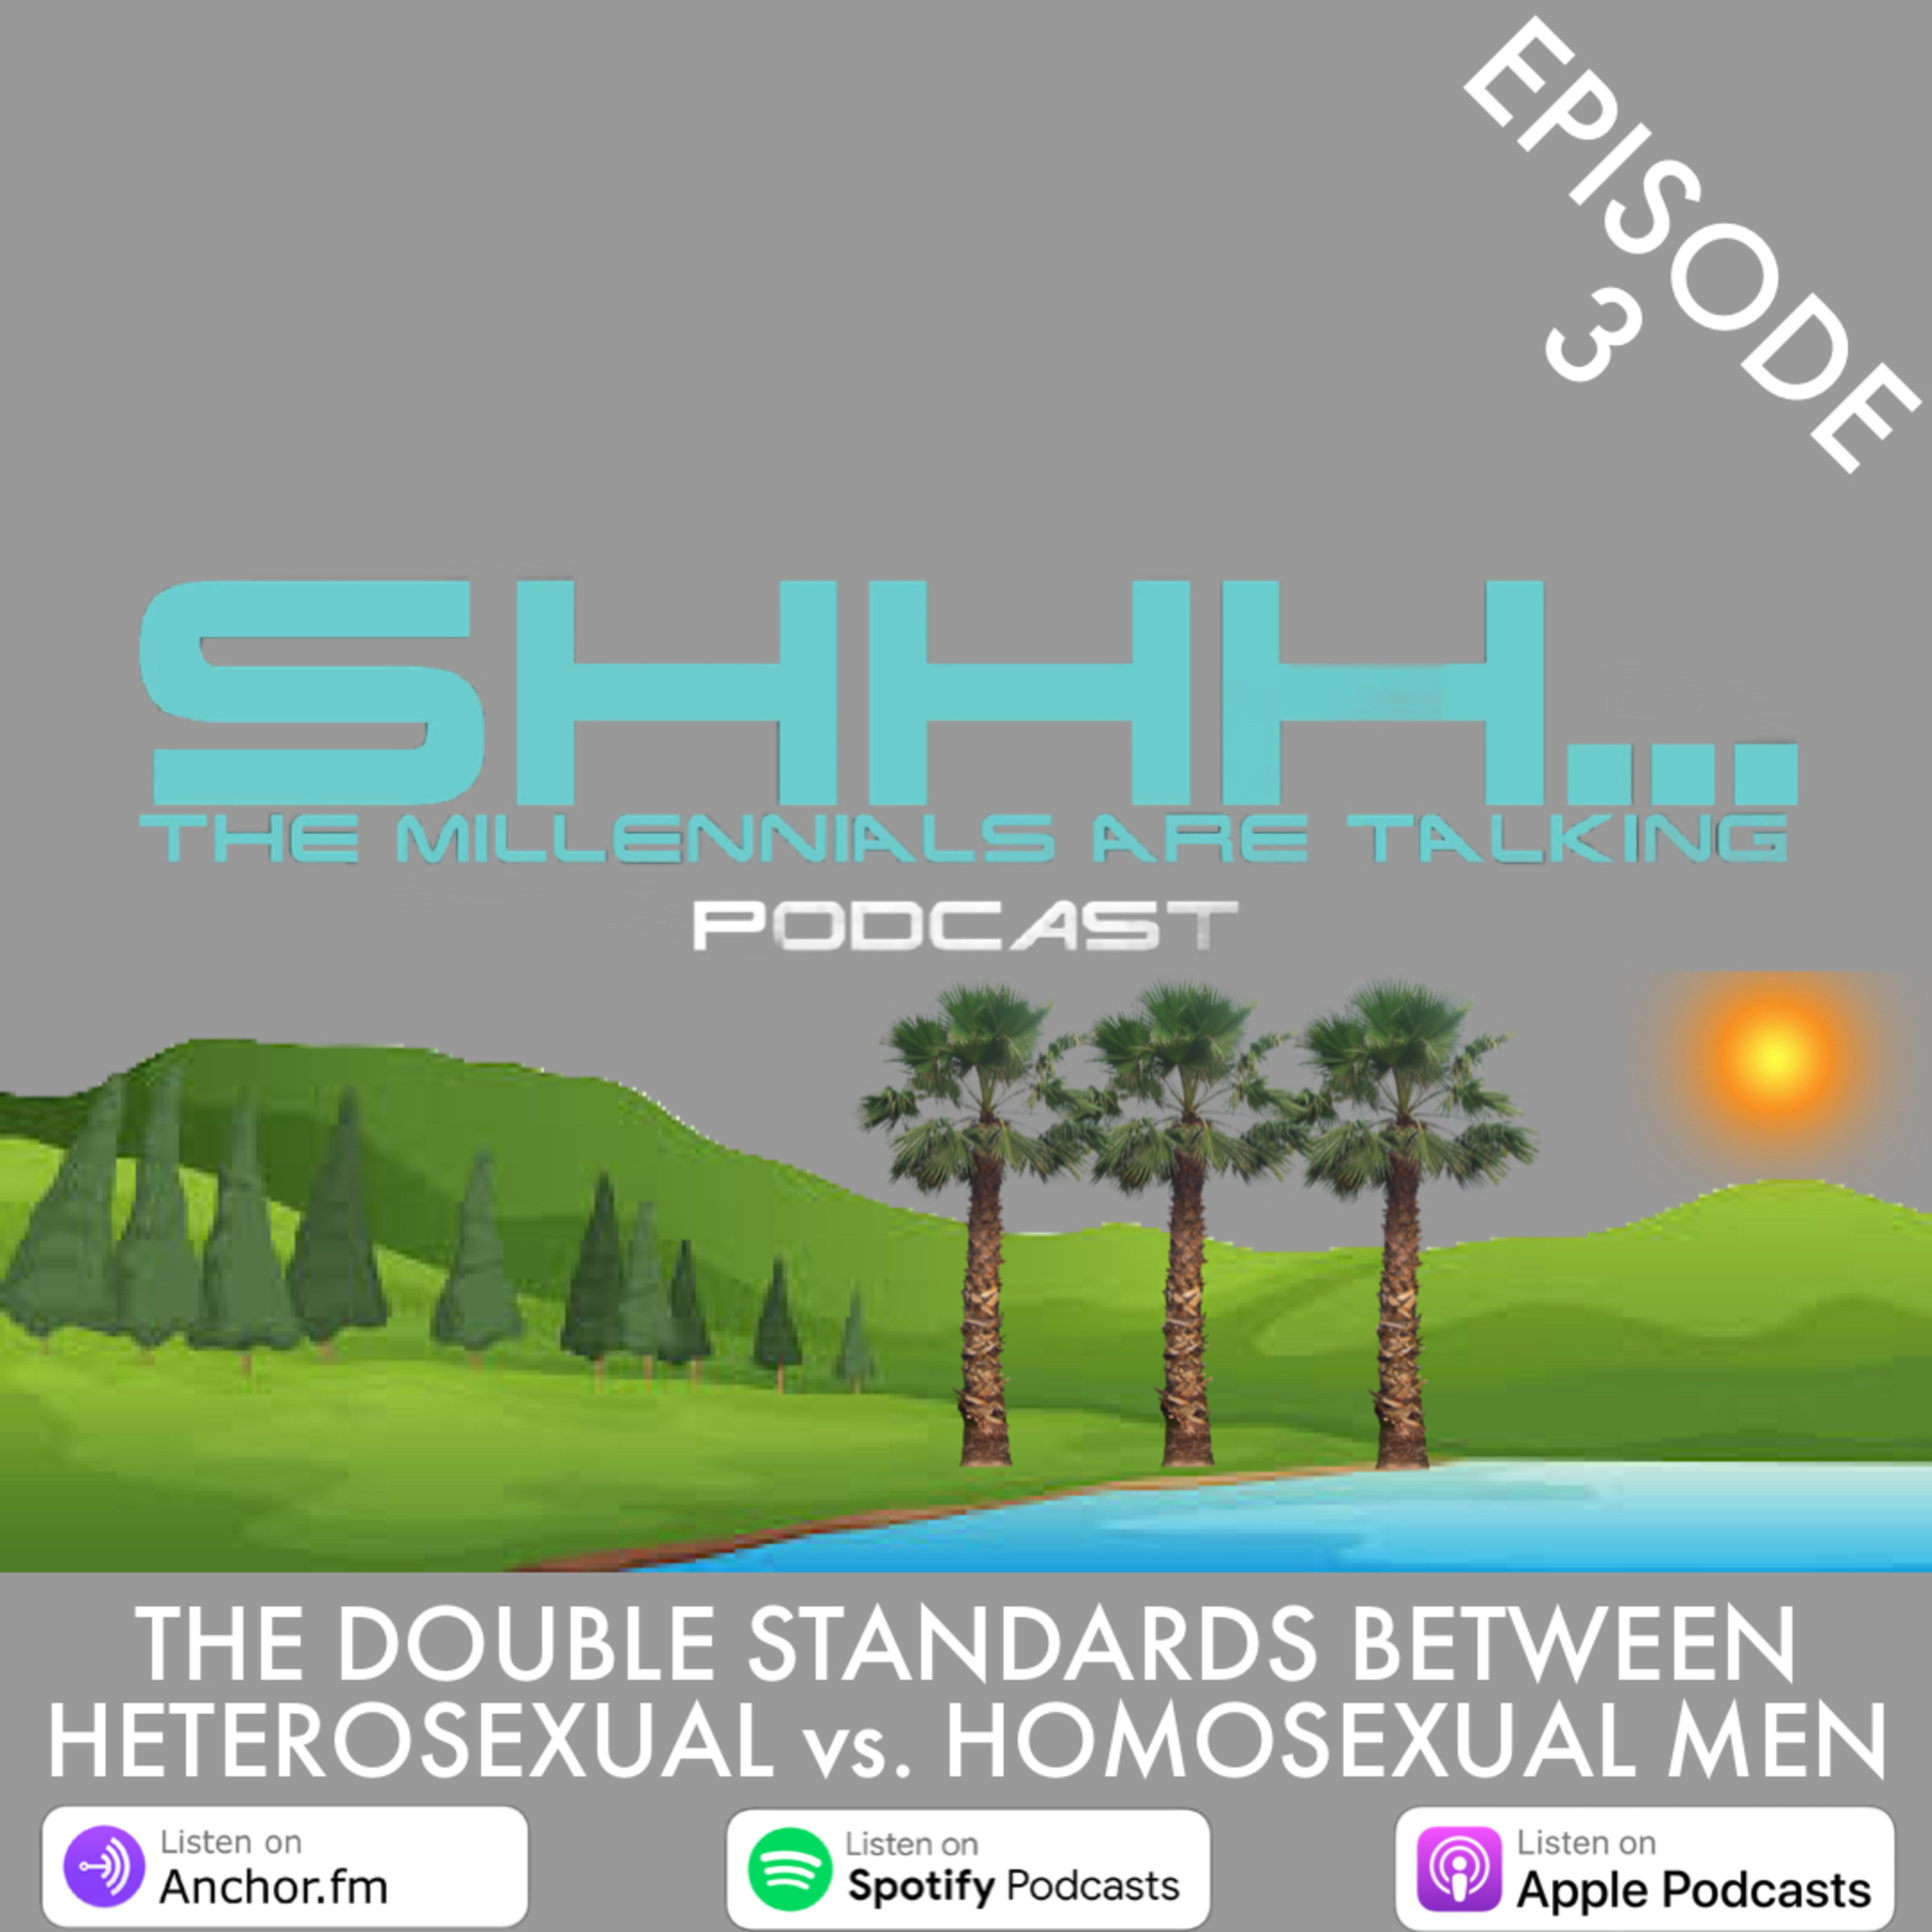 THE DOUBLE STANDARDS BETWEEN HETEROSEXUAL vs. HOMOSEXUAL MEN